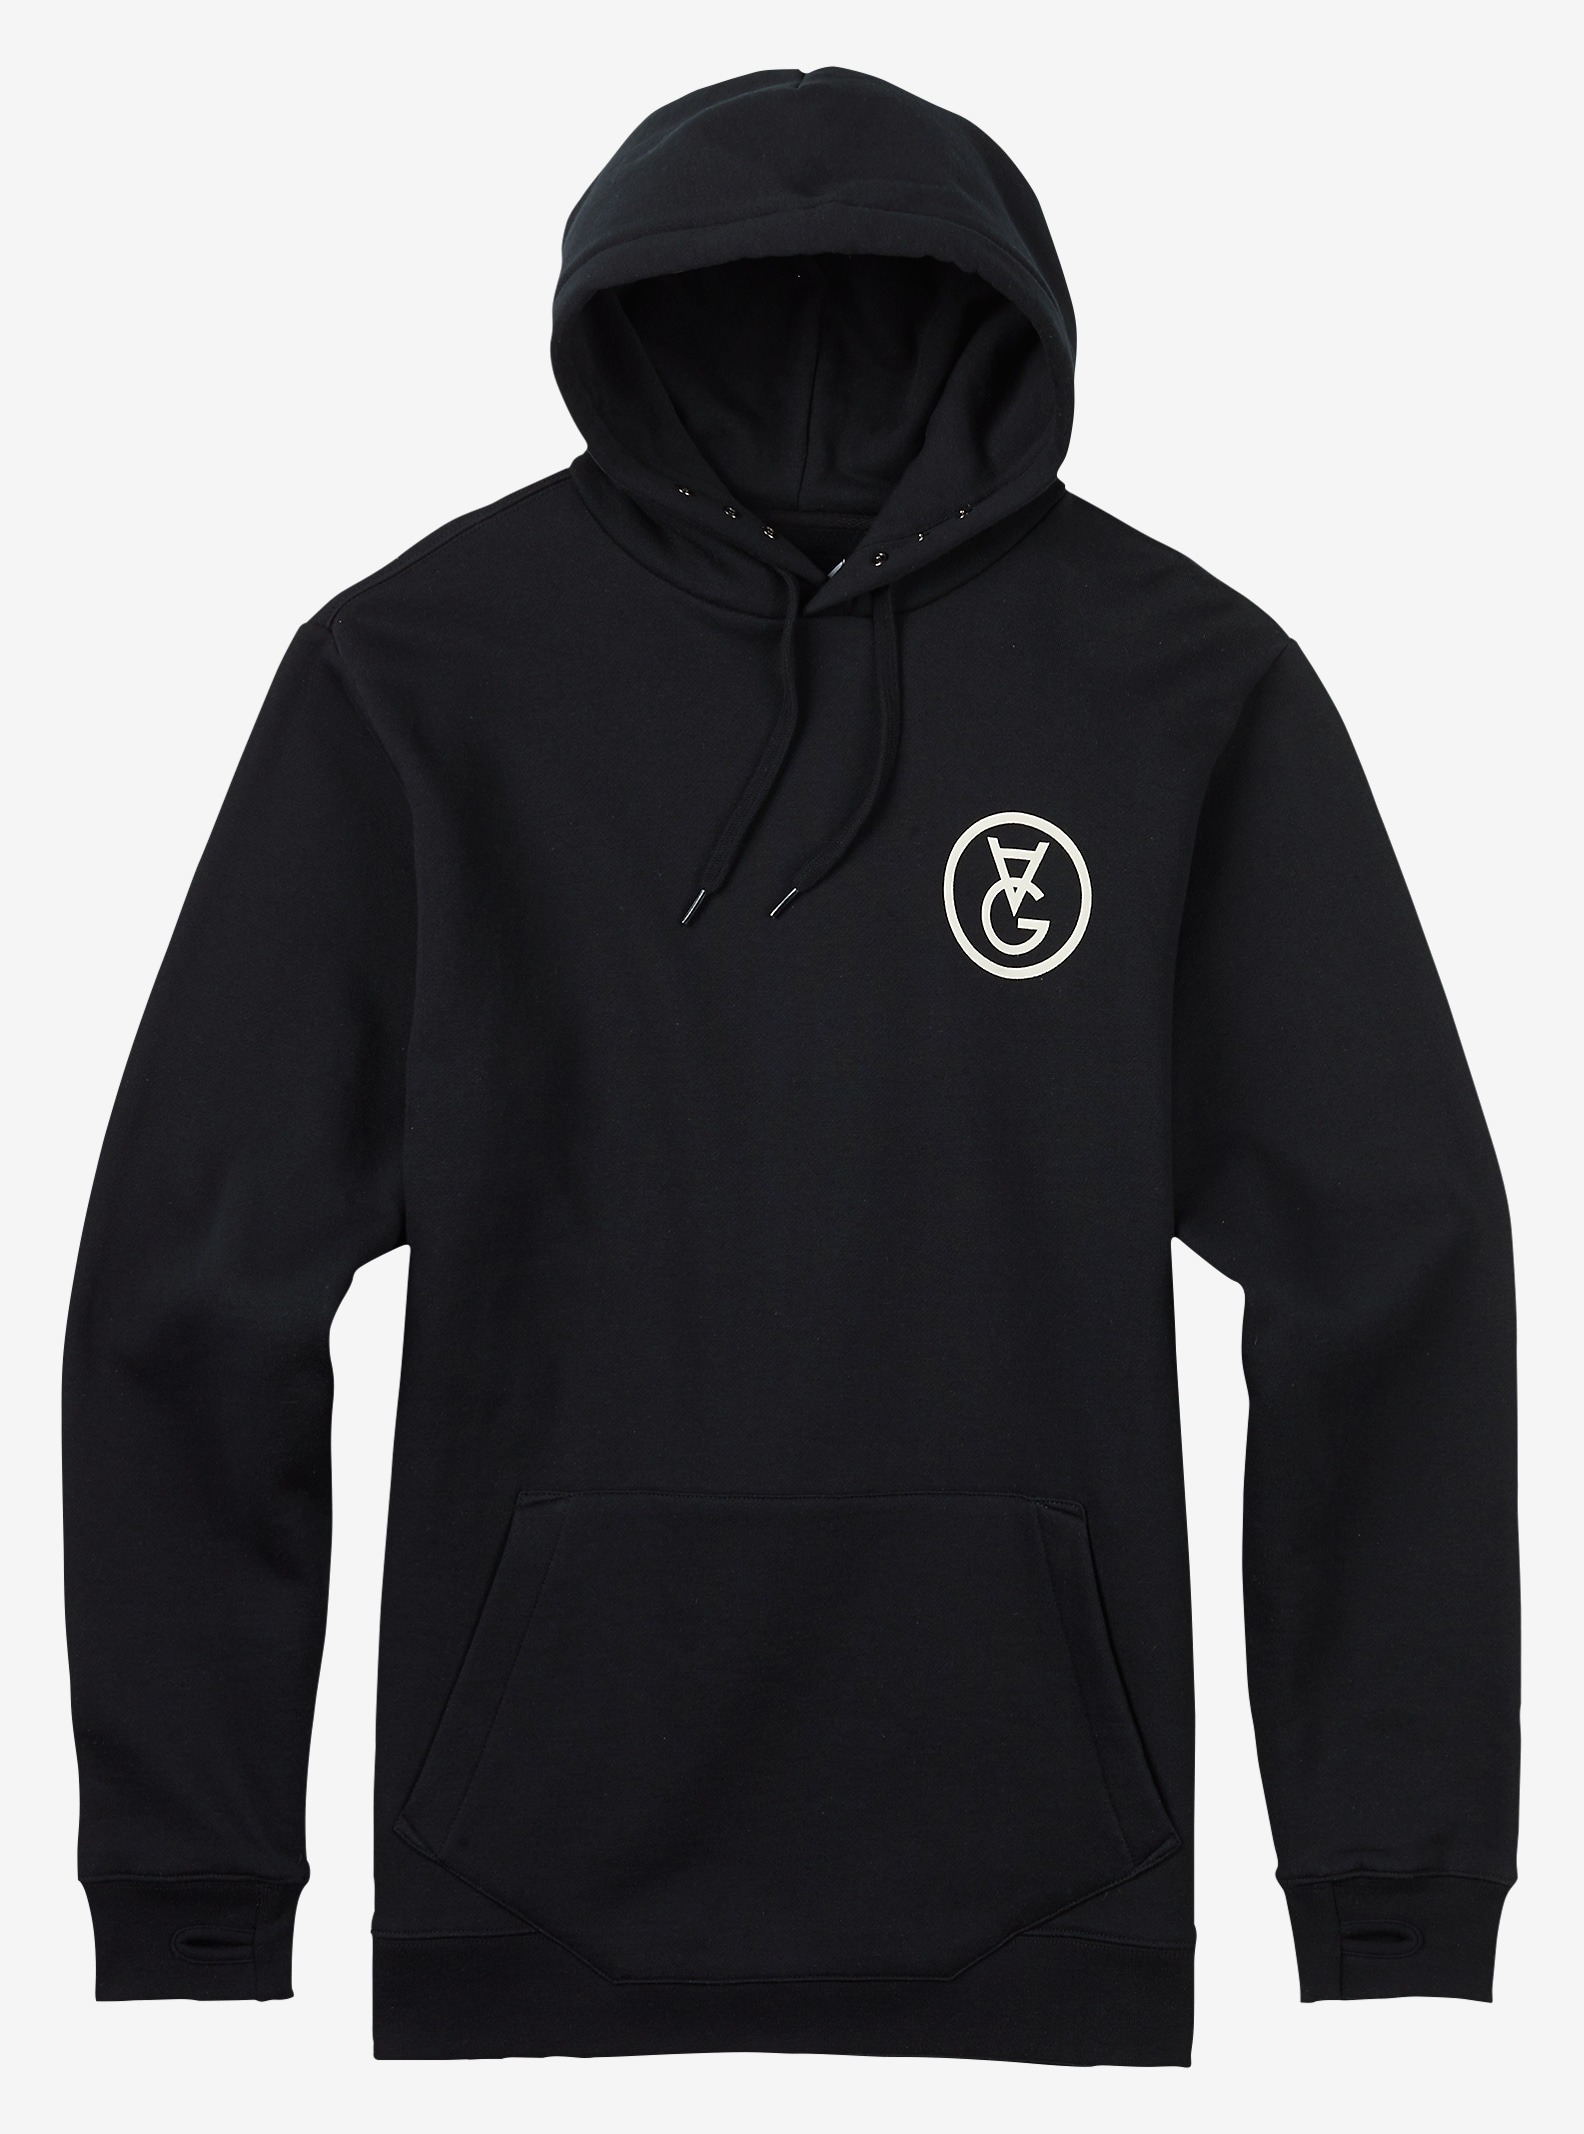 Analog Agent Pullover shown in True Black